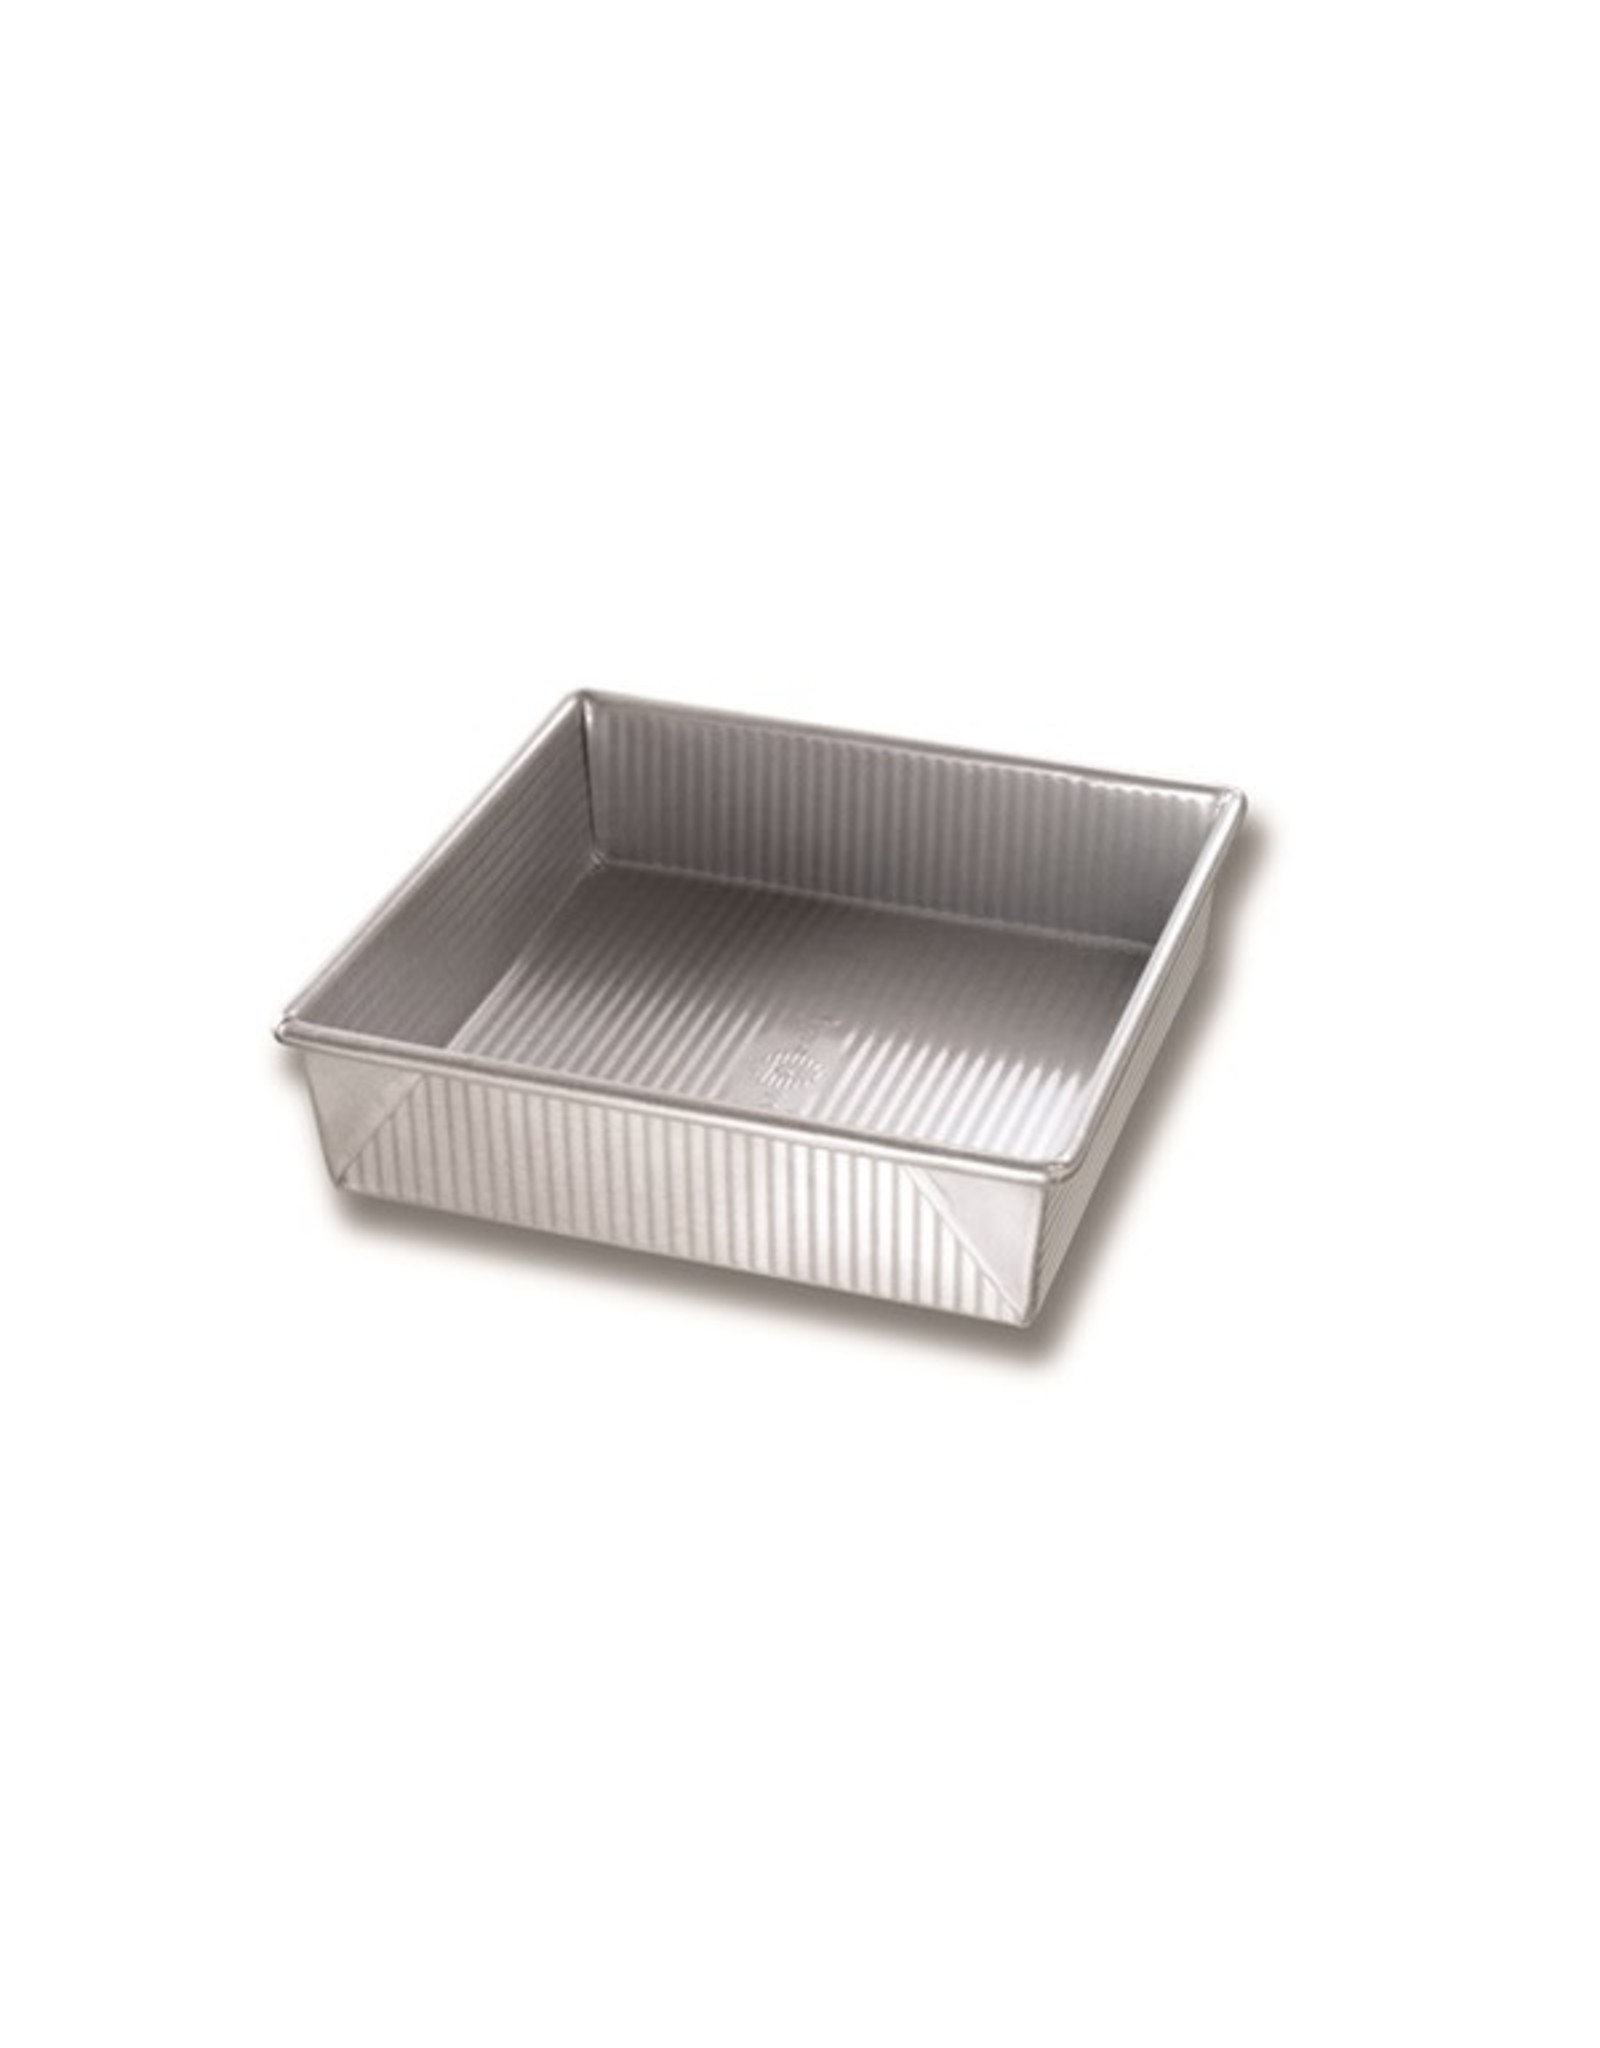 USA Pan Cake Pan, Square, 9x9